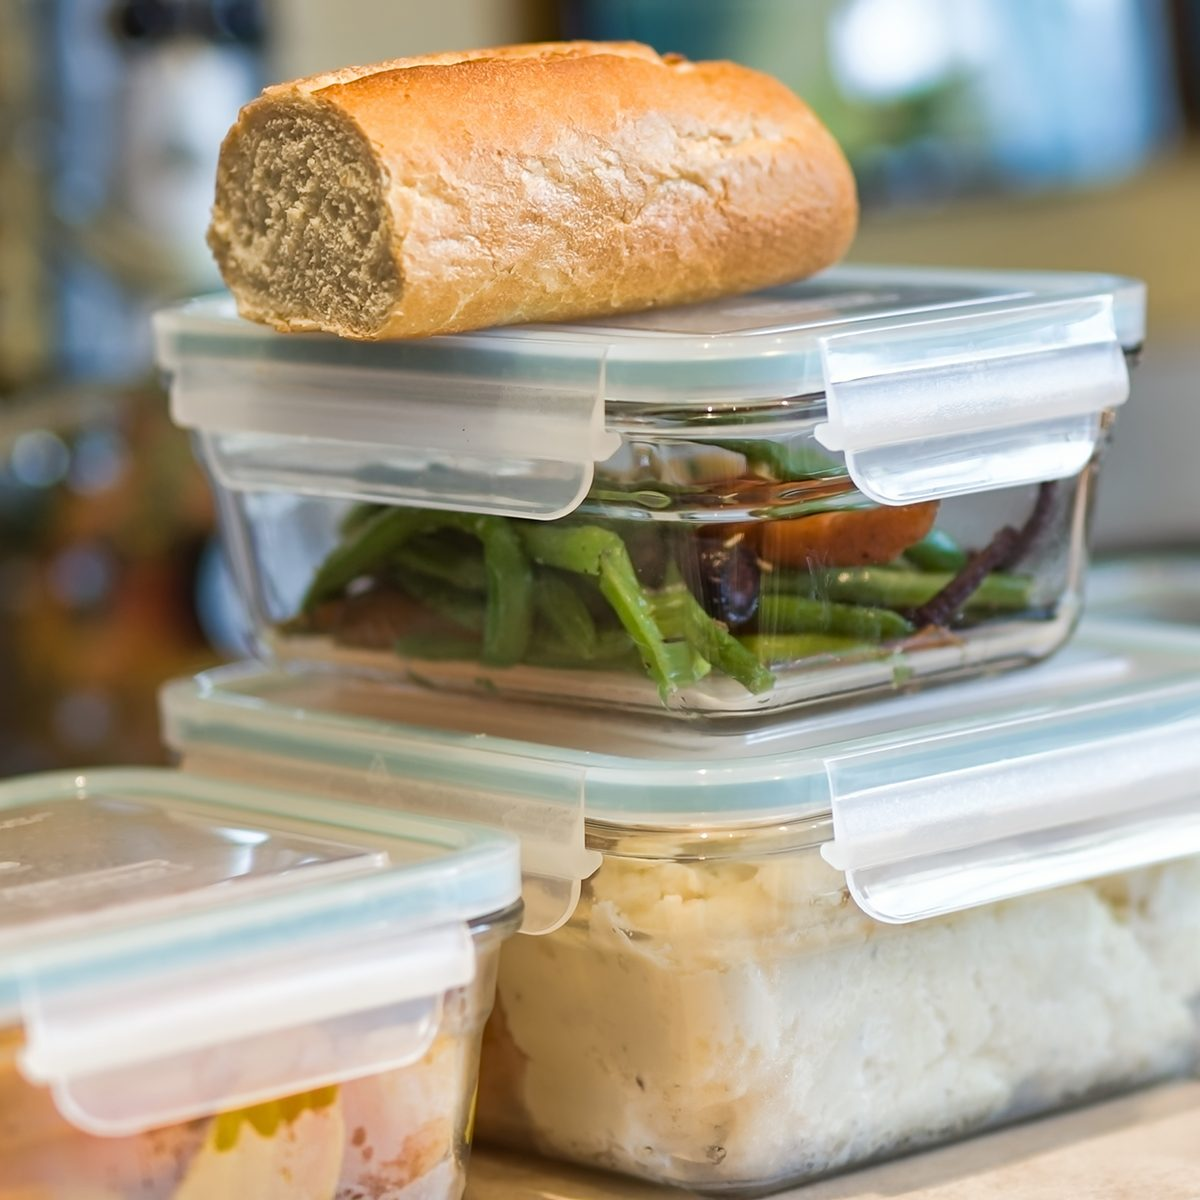 Stacked containers of leftovers